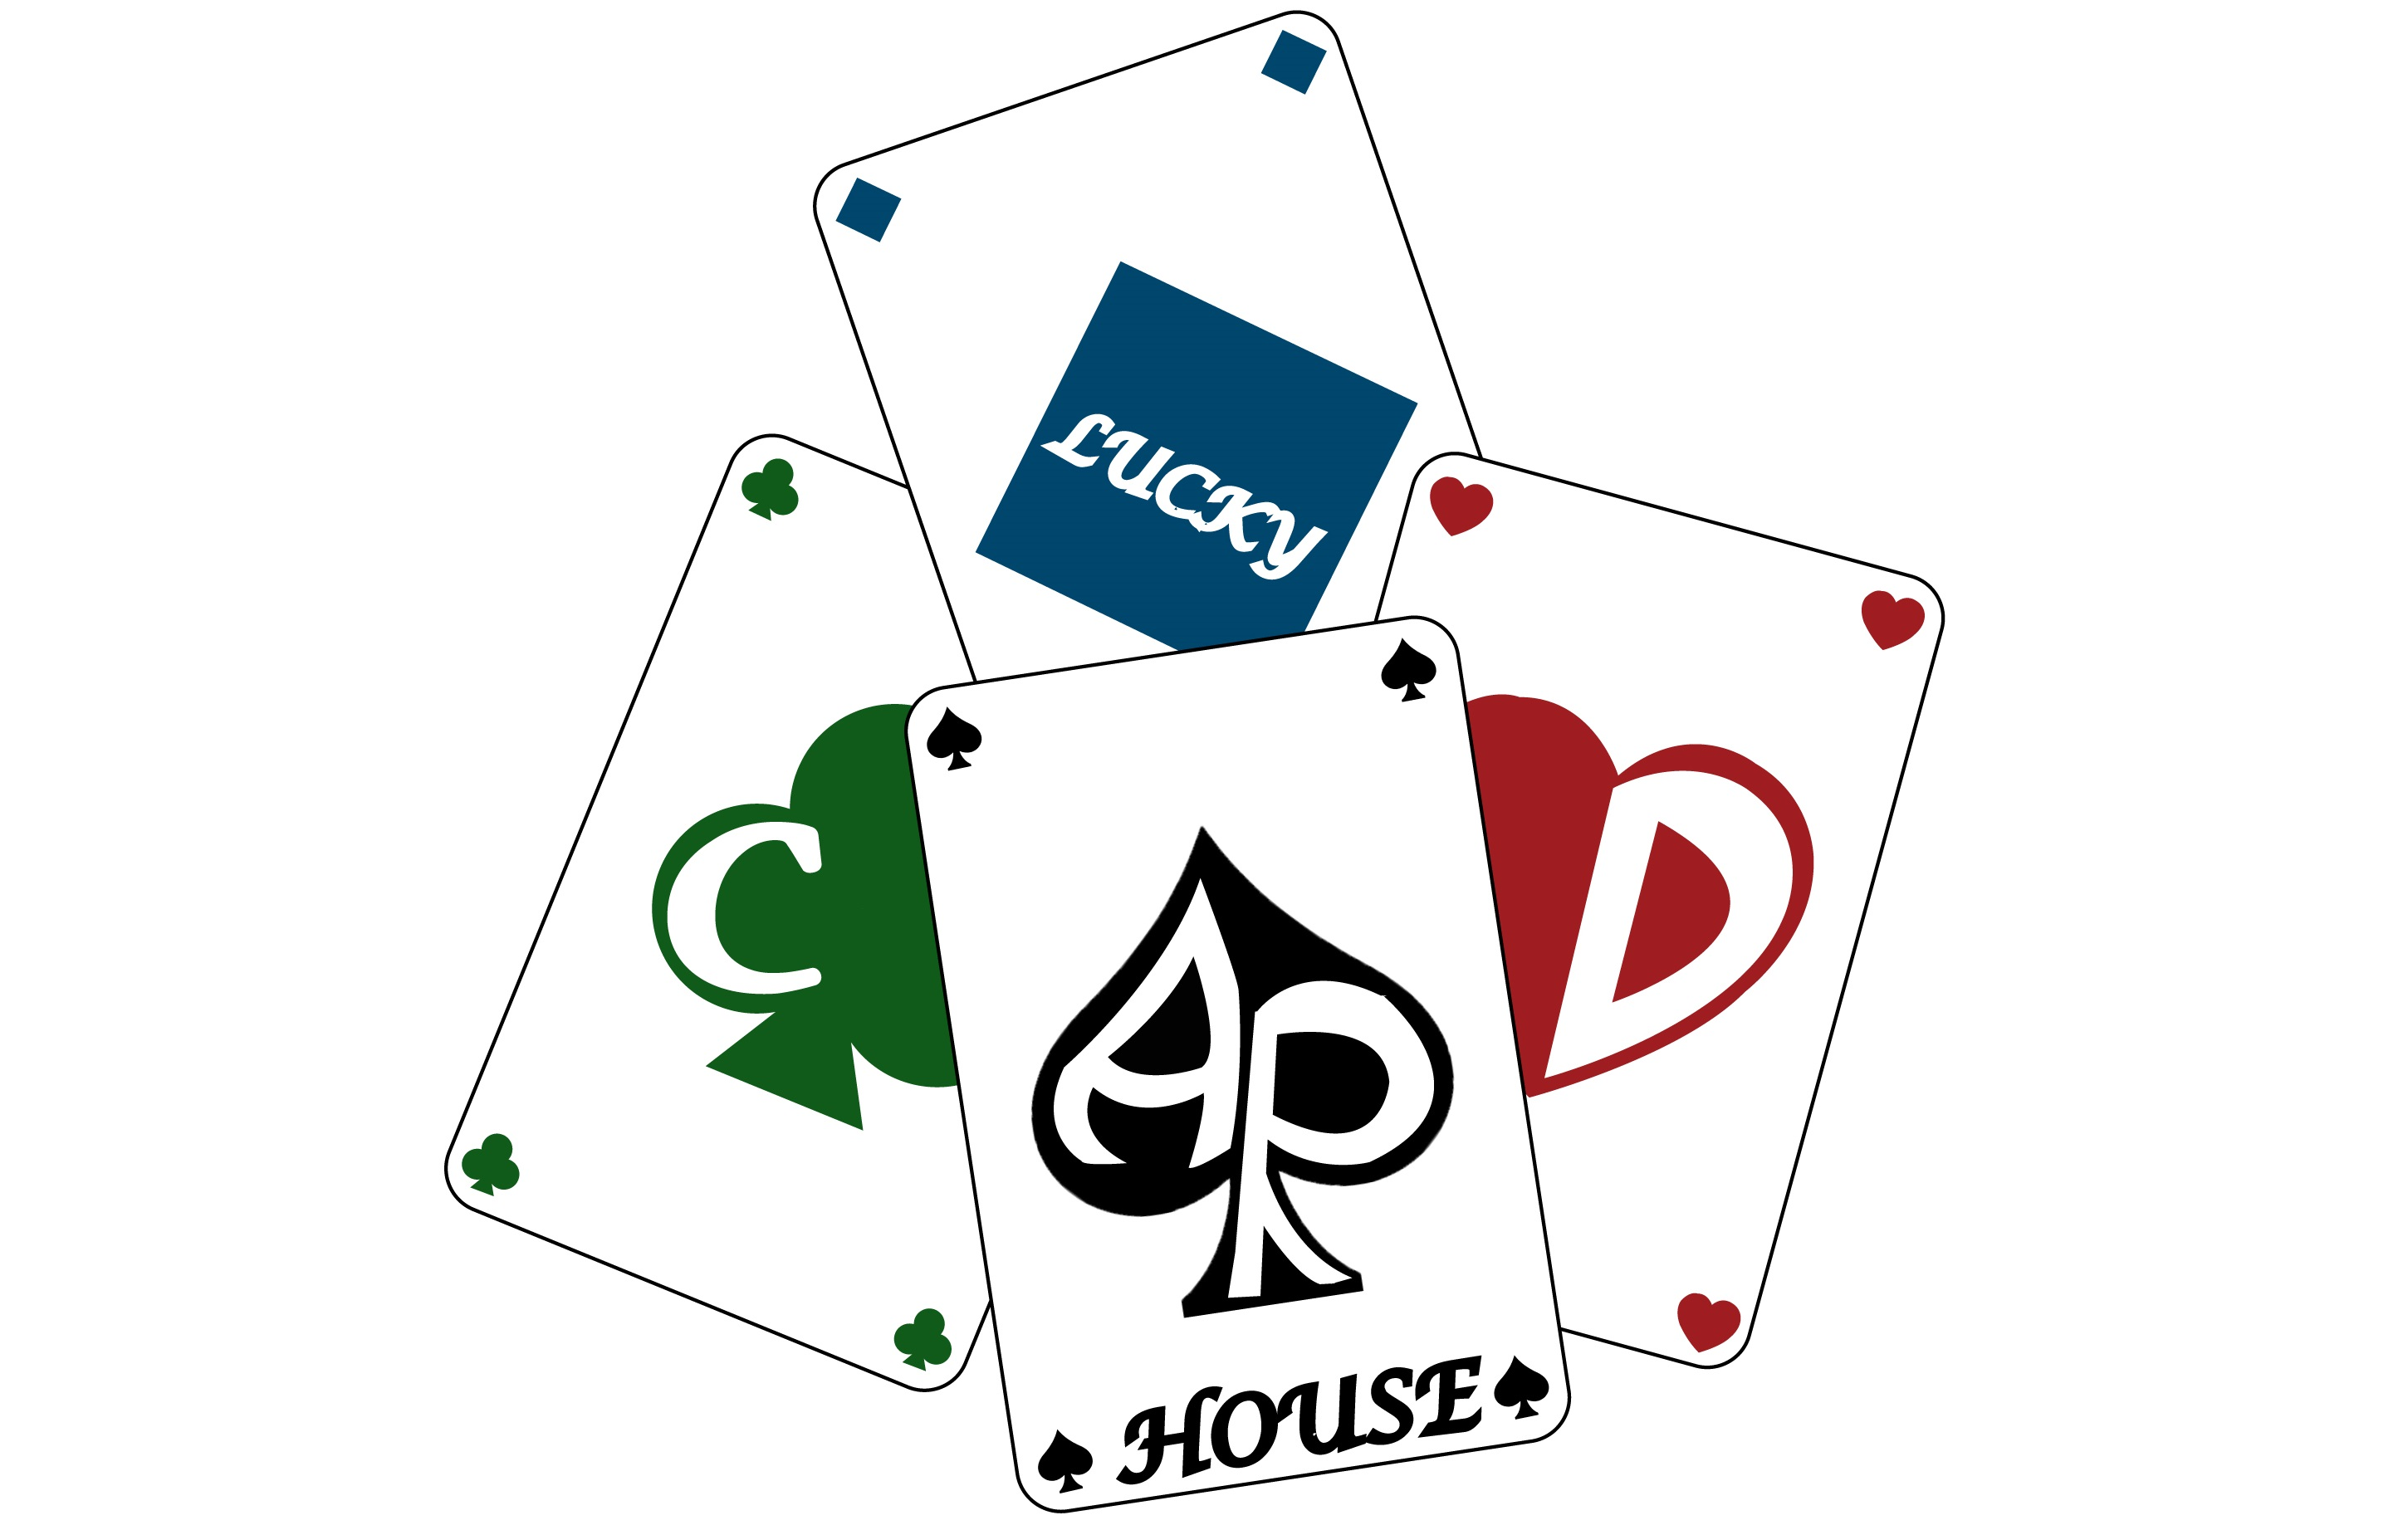 abbyjcardhouse checked in to Lucky Card House